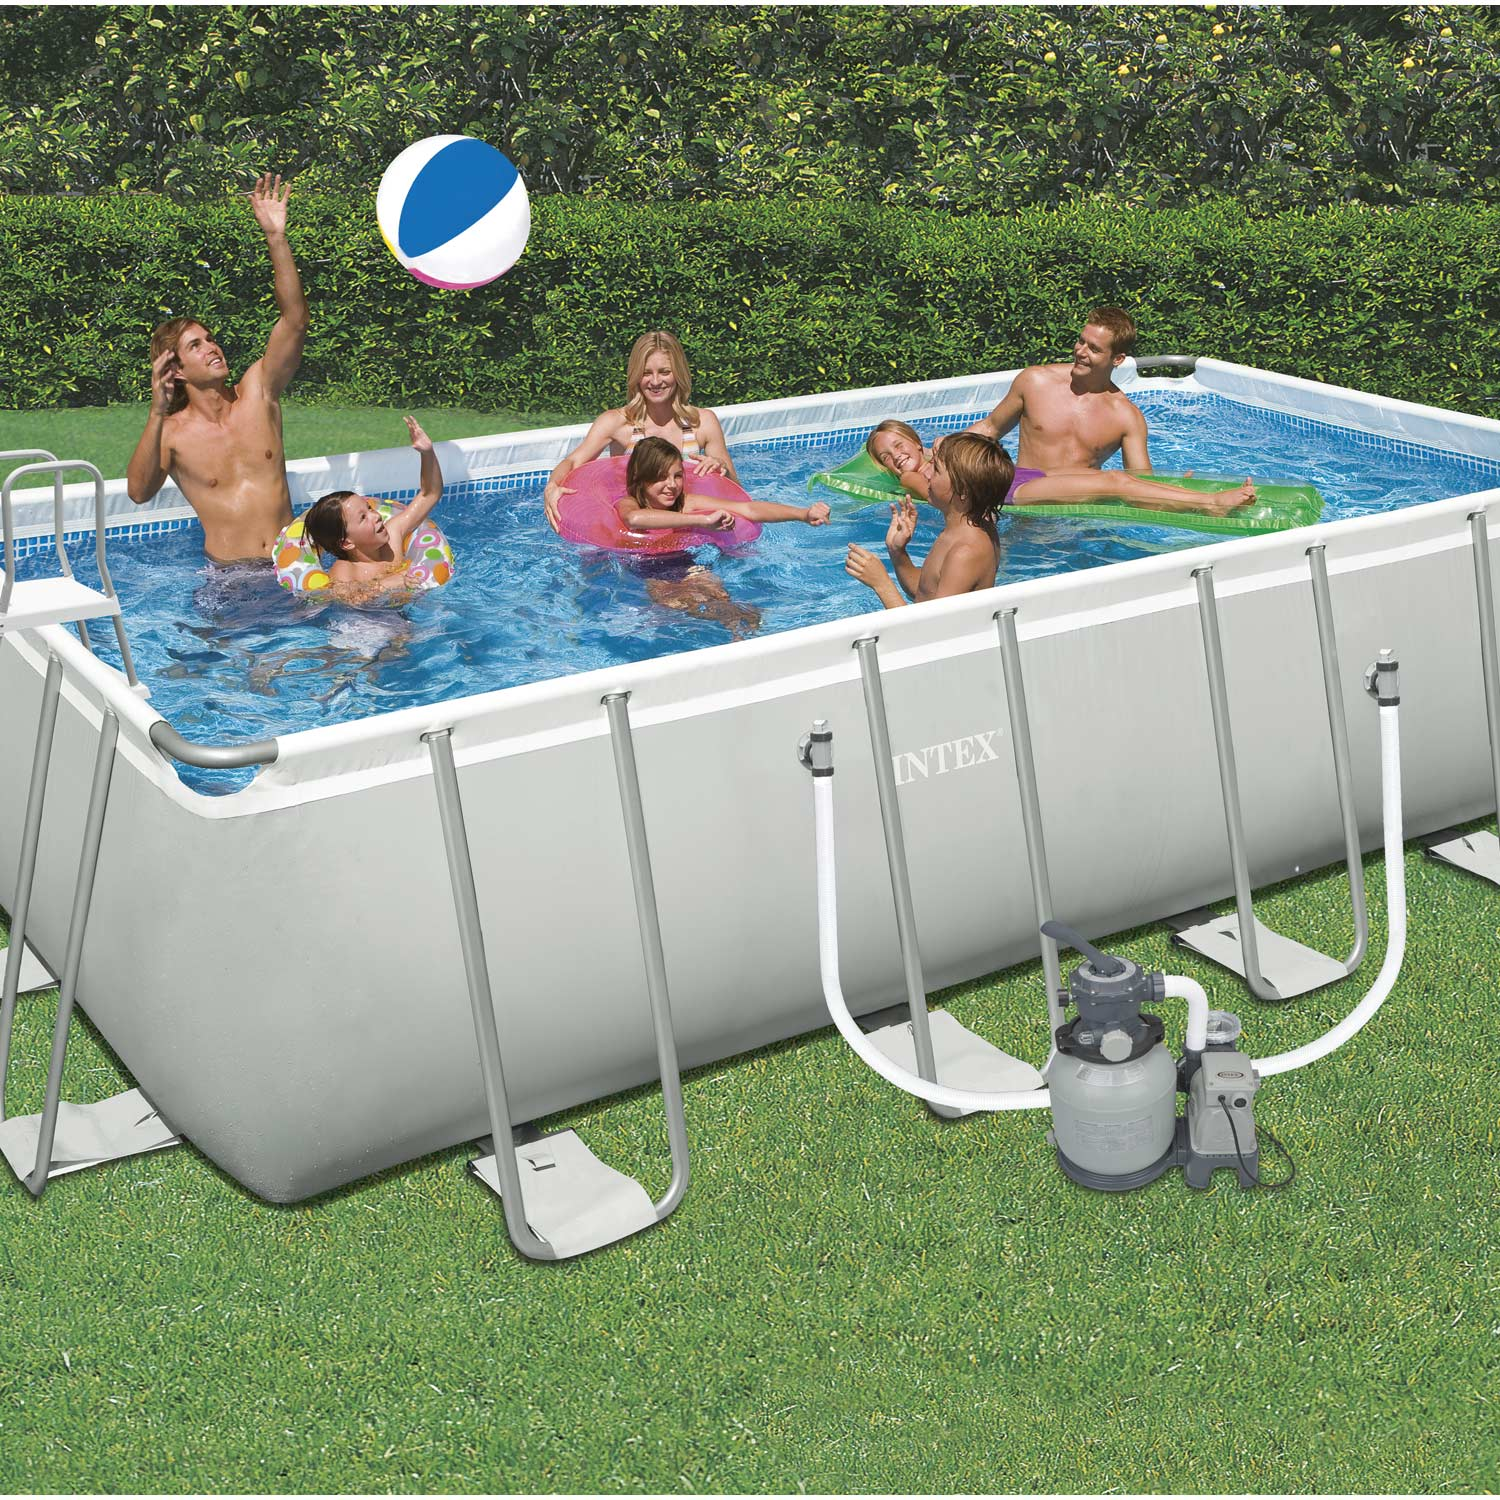 Piscine hors sol autoportante tubulaire intex l x l for Hors sol tubulaire